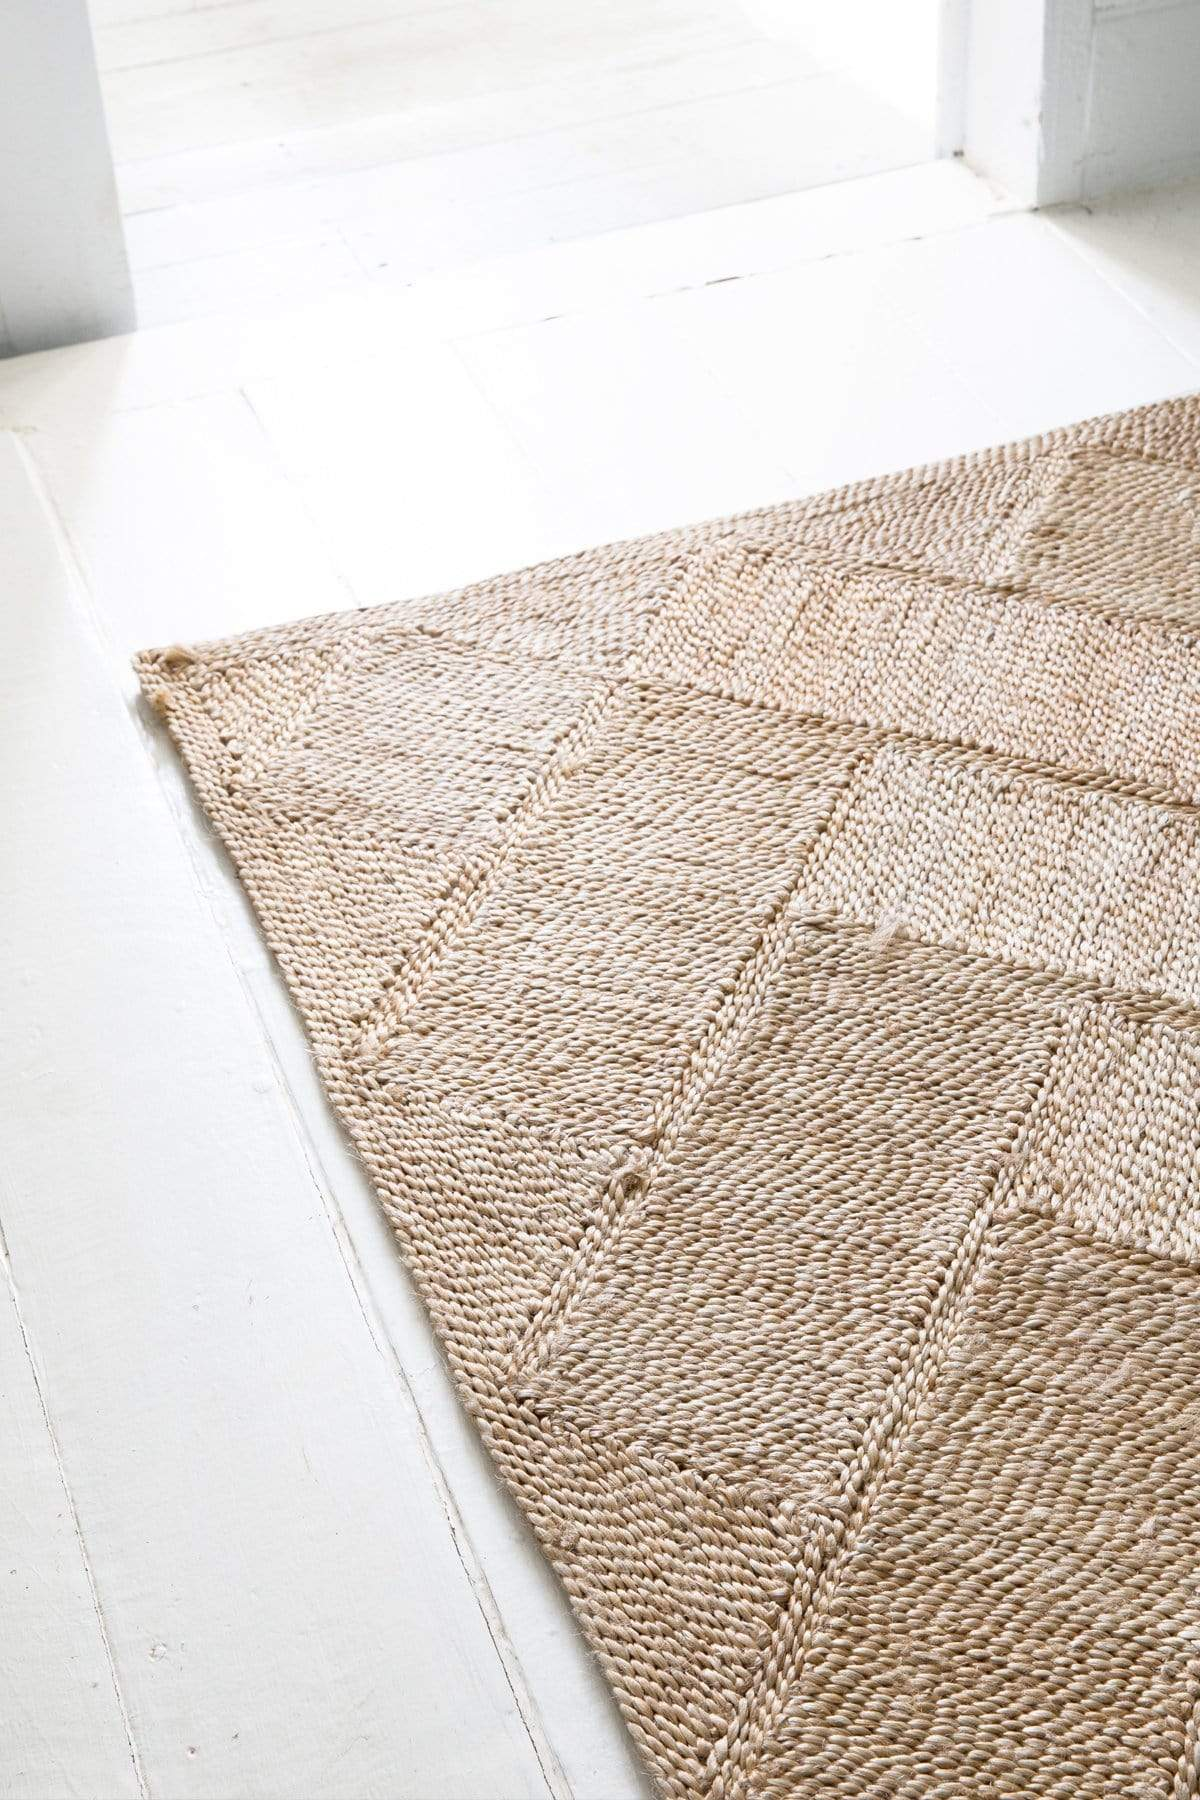 Bhola Jute Rug Natural 318 X 200cm The Dharma Door